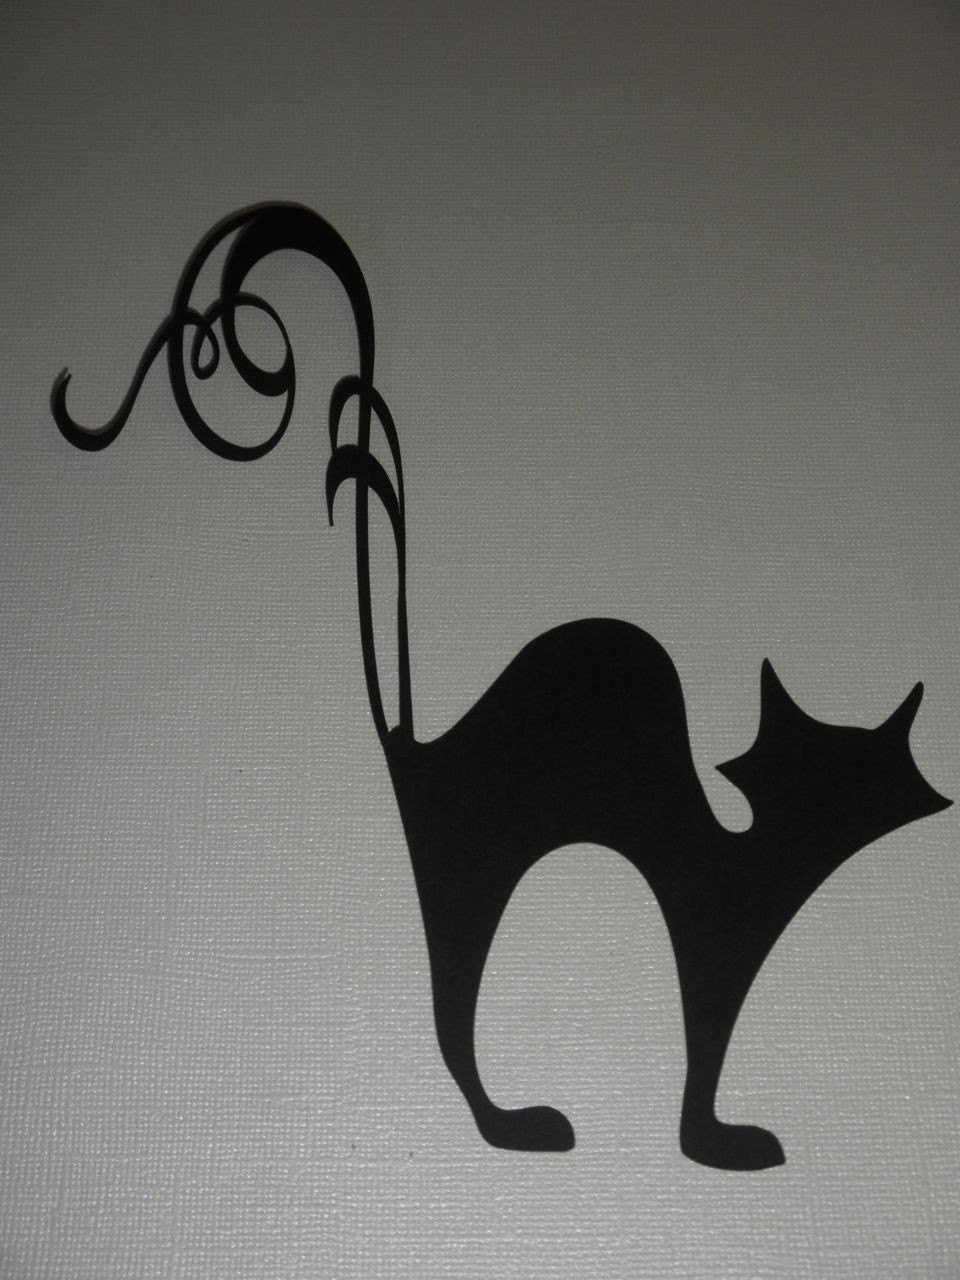 Black Cat Scroll - niklindesigns1225